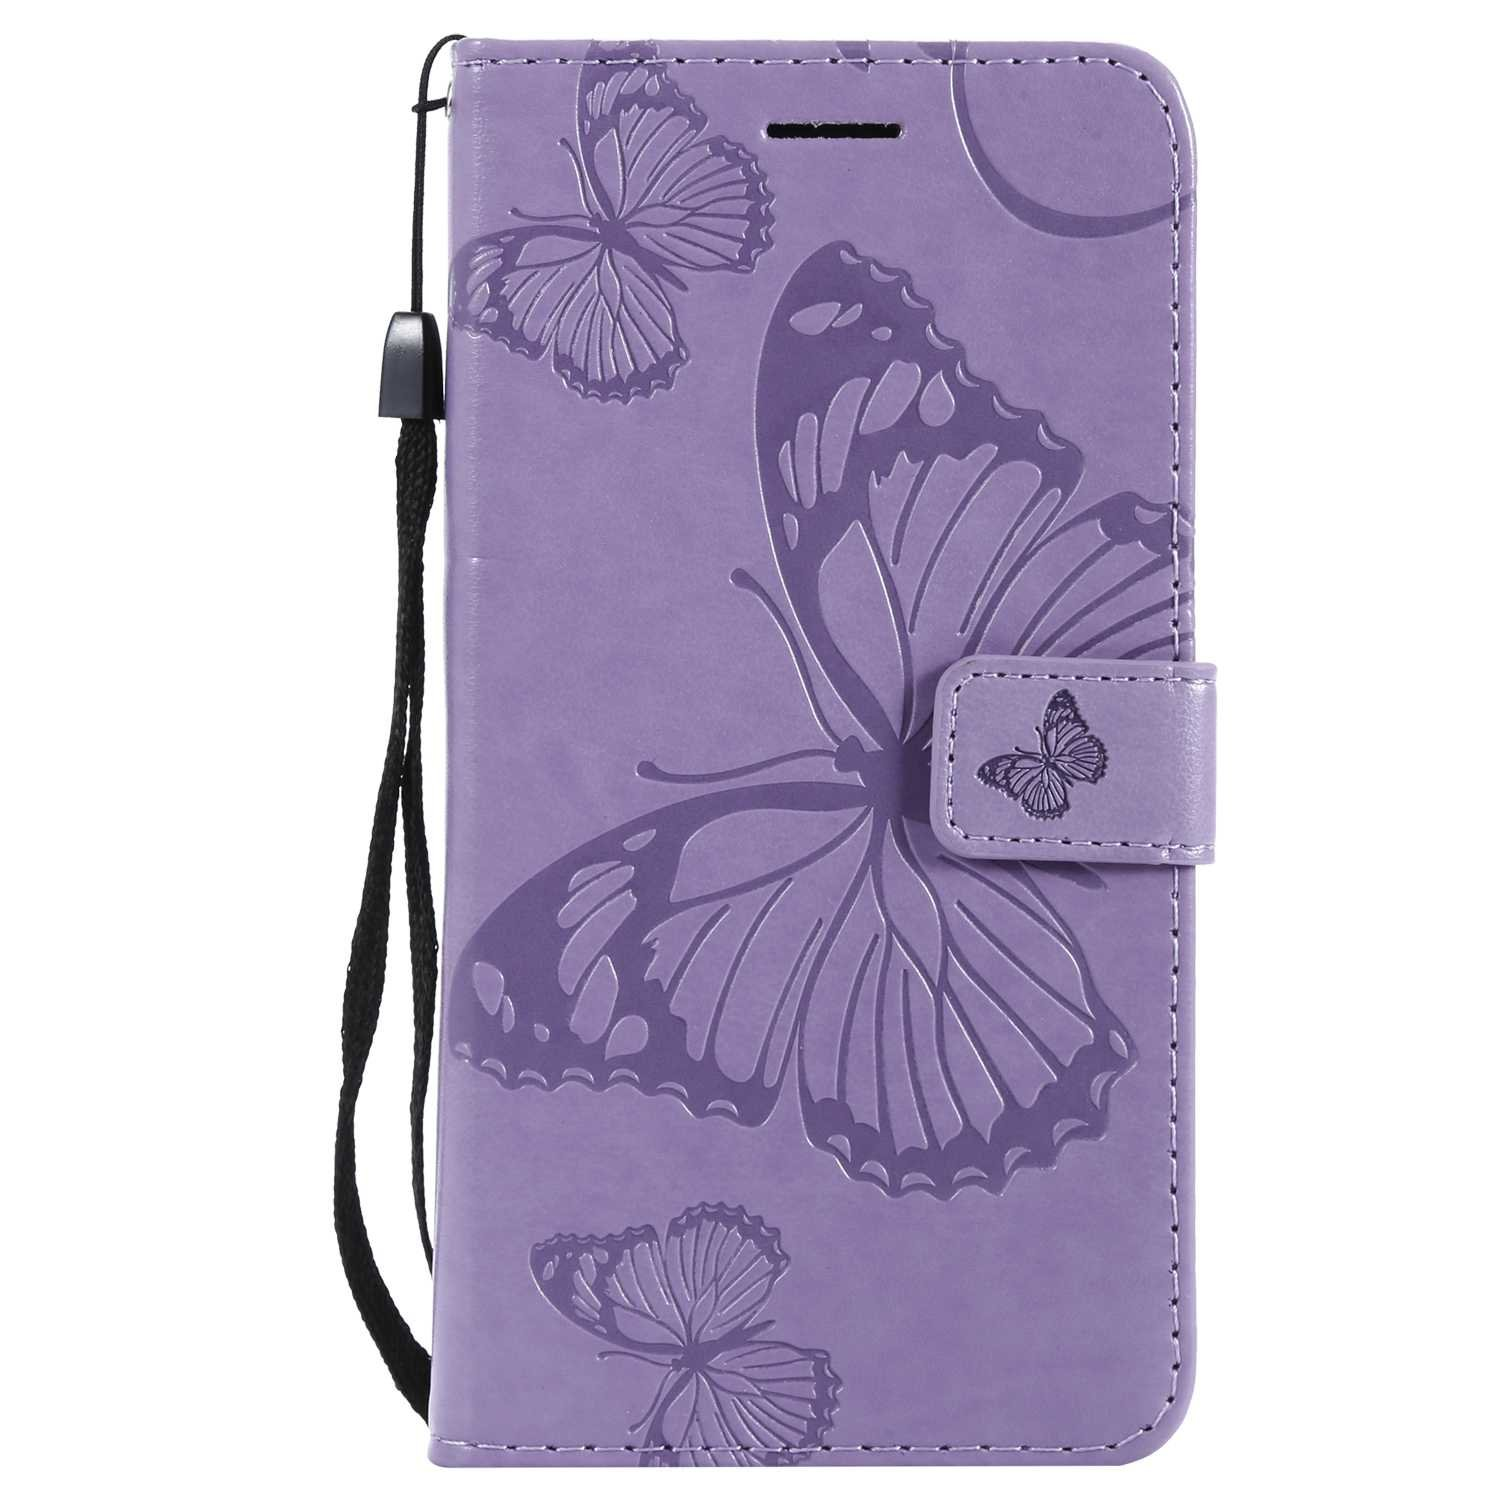 CUSKING Case for Samsung Galaxy J7 2016, Leather Flip Cover Magnetic Wallet Case with Butterfly Embossed Design, Case with Card Holders and Kickstand - Purple